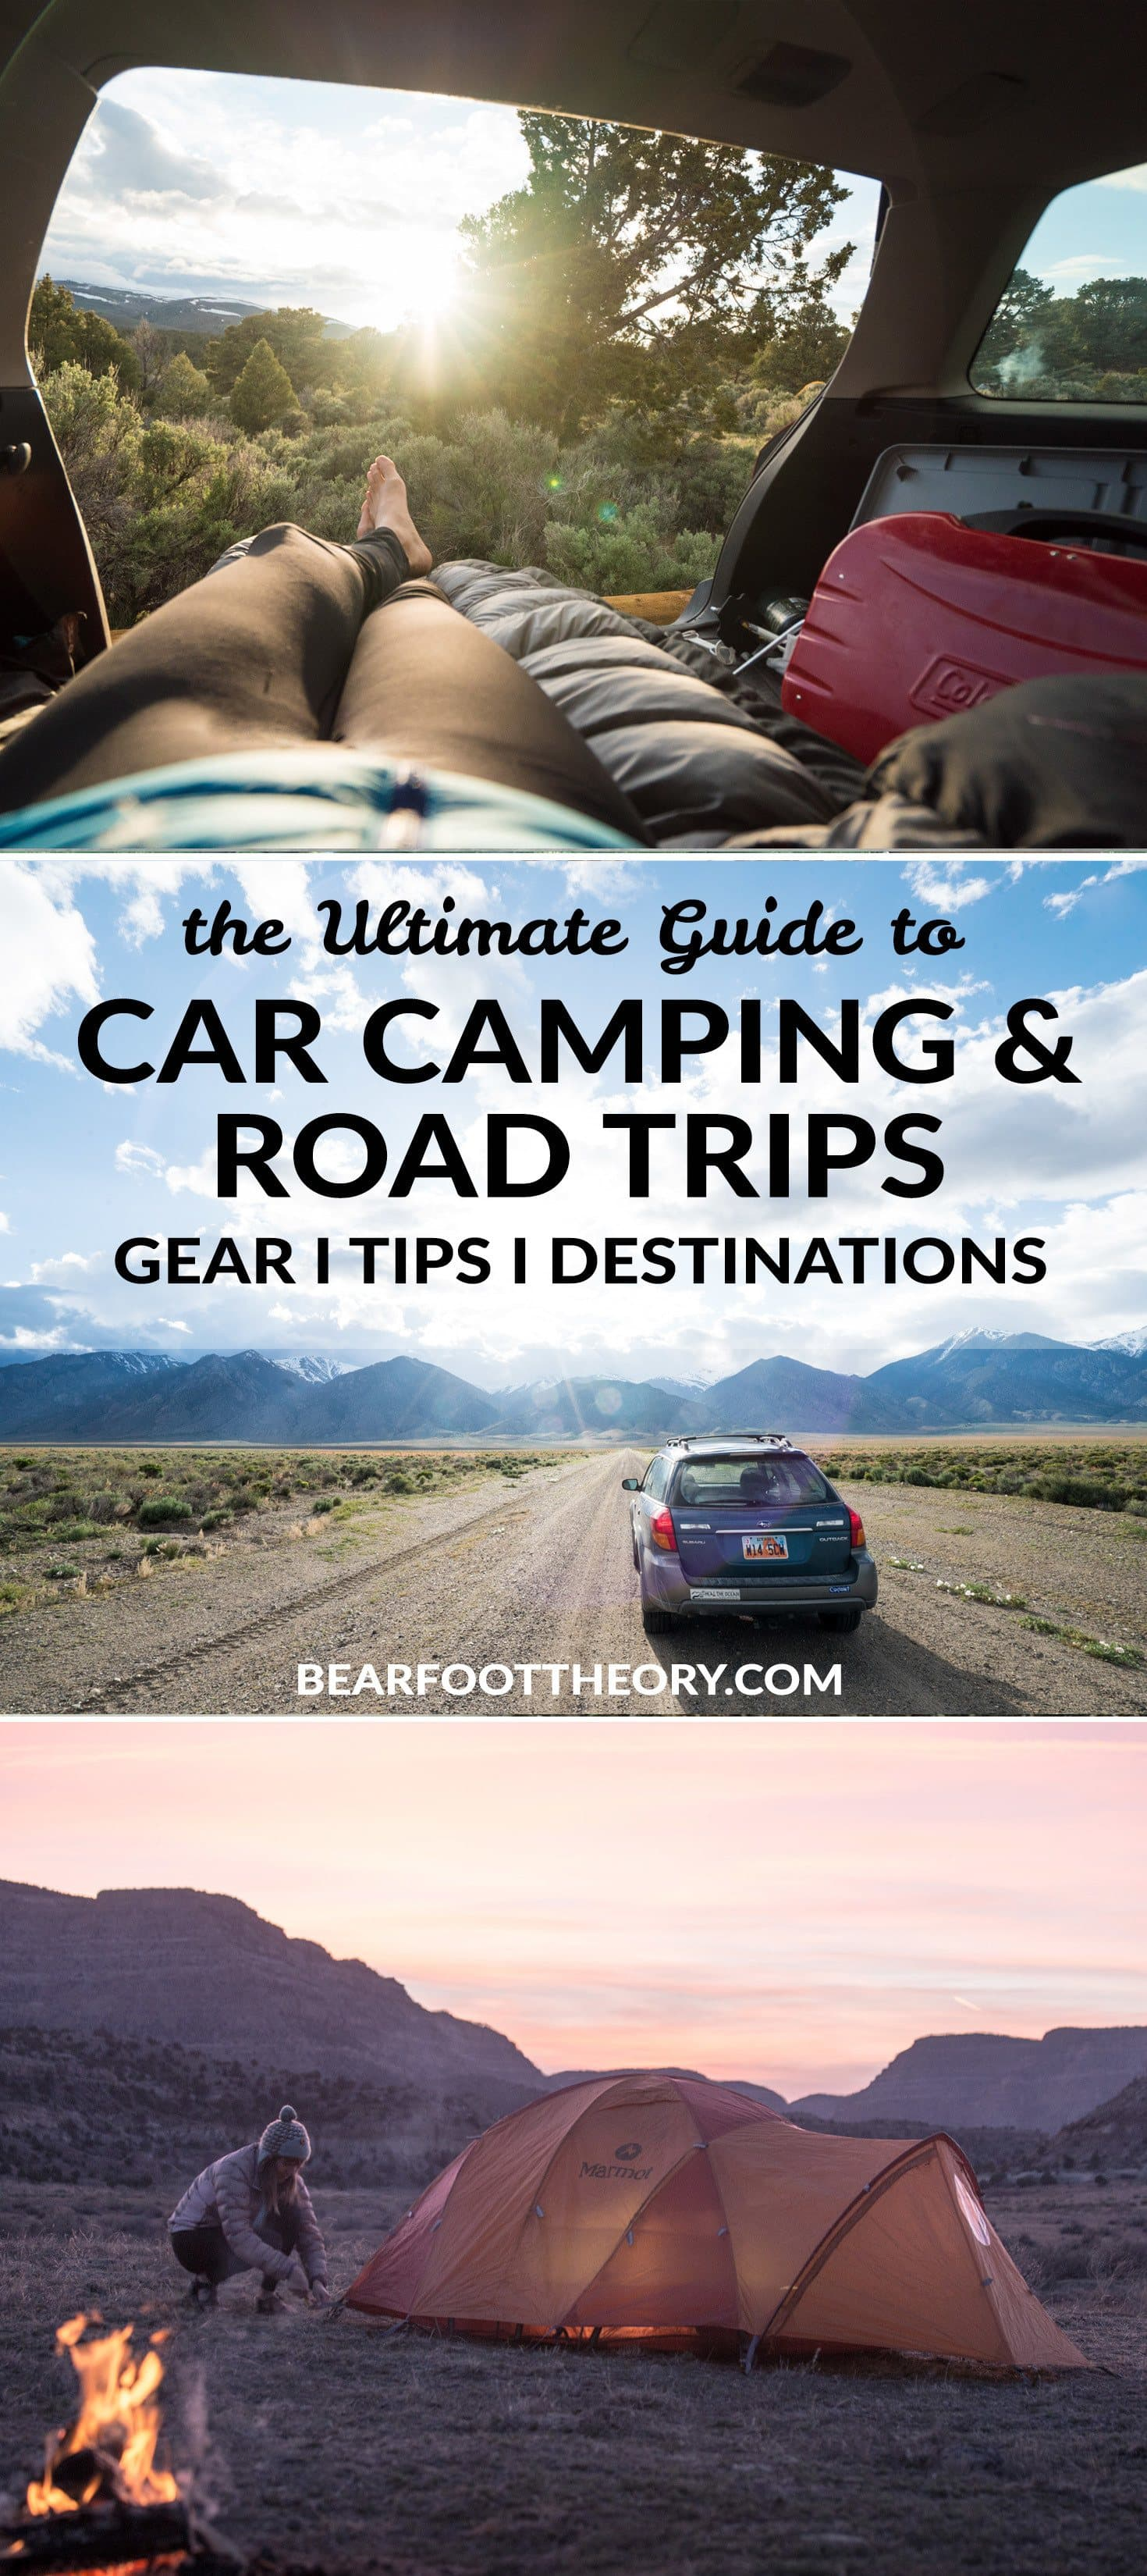 Plan an awesome road trip! Get our road trip and car camping guide featuring our favorite gear, itineraries, safety tips & all of our most popular blog posts.